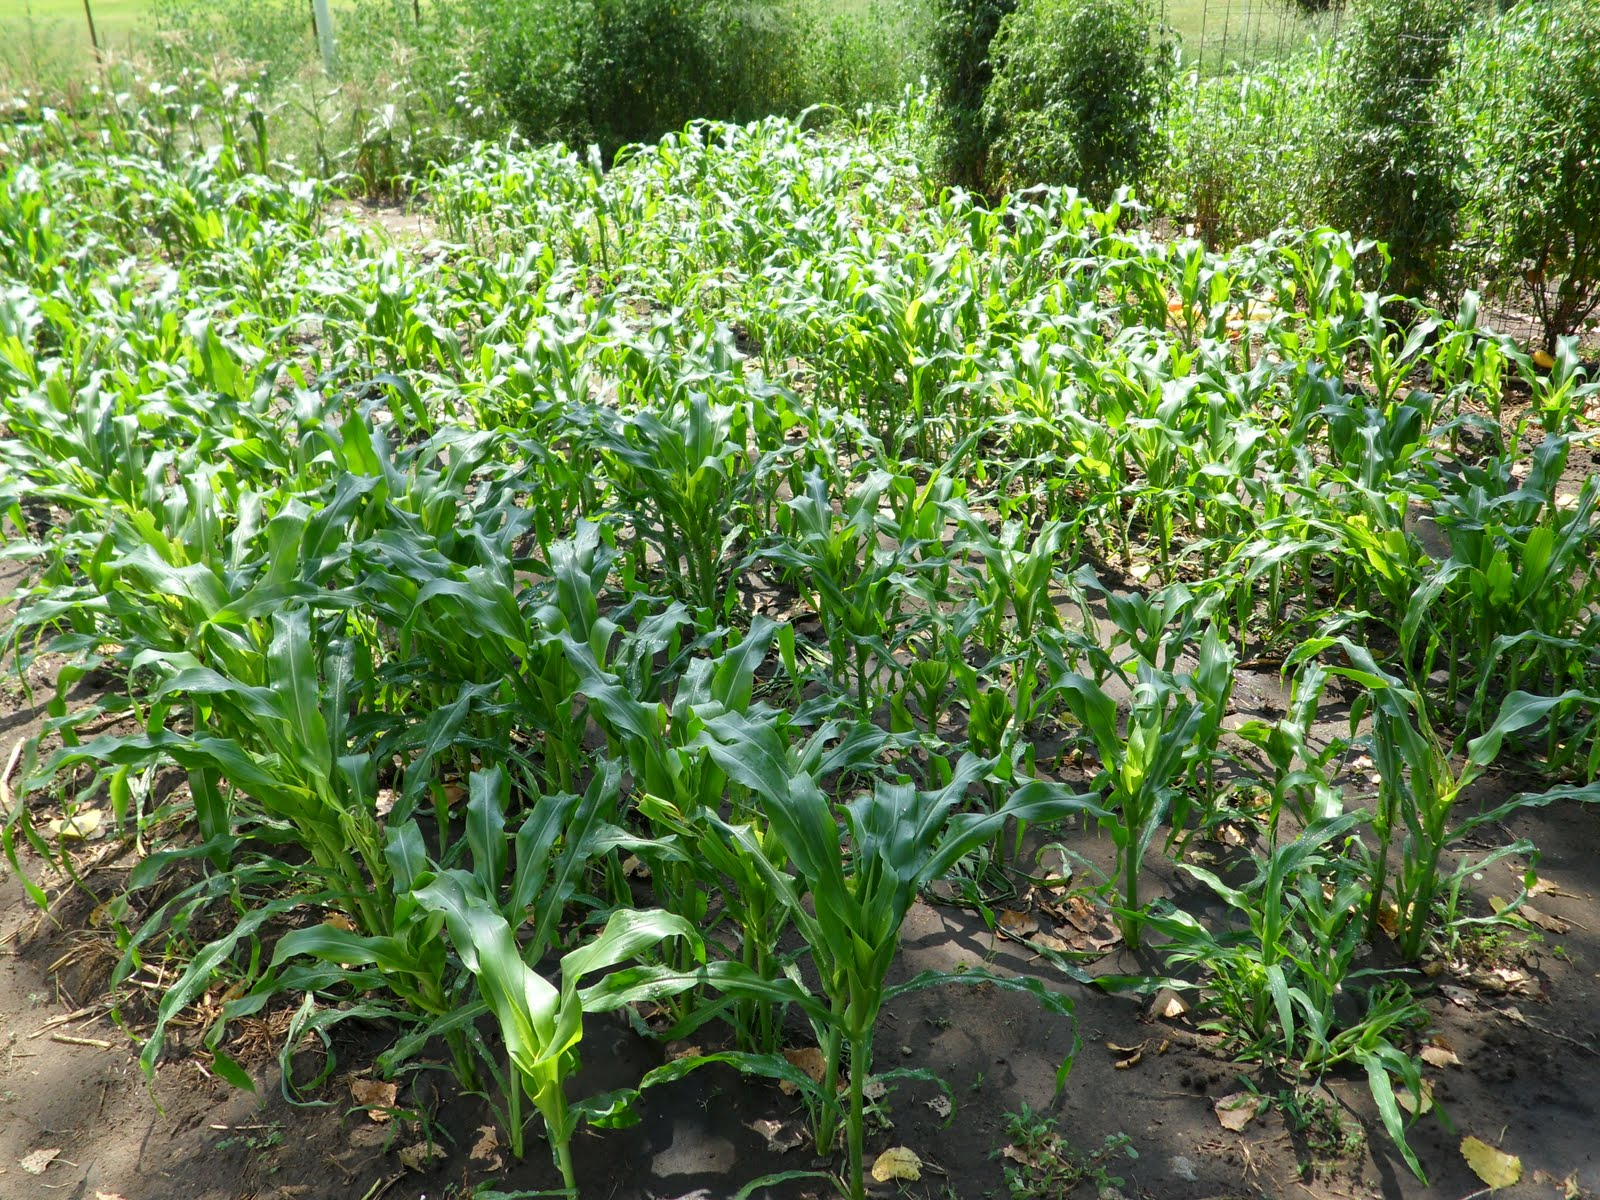 The Corn I Grew In My Small Aquaponics System Last Year Grew About 50%  Faster Than The Corn I Grew Alongside It In The Dirt Garden, And I Have  Little Doubt ...